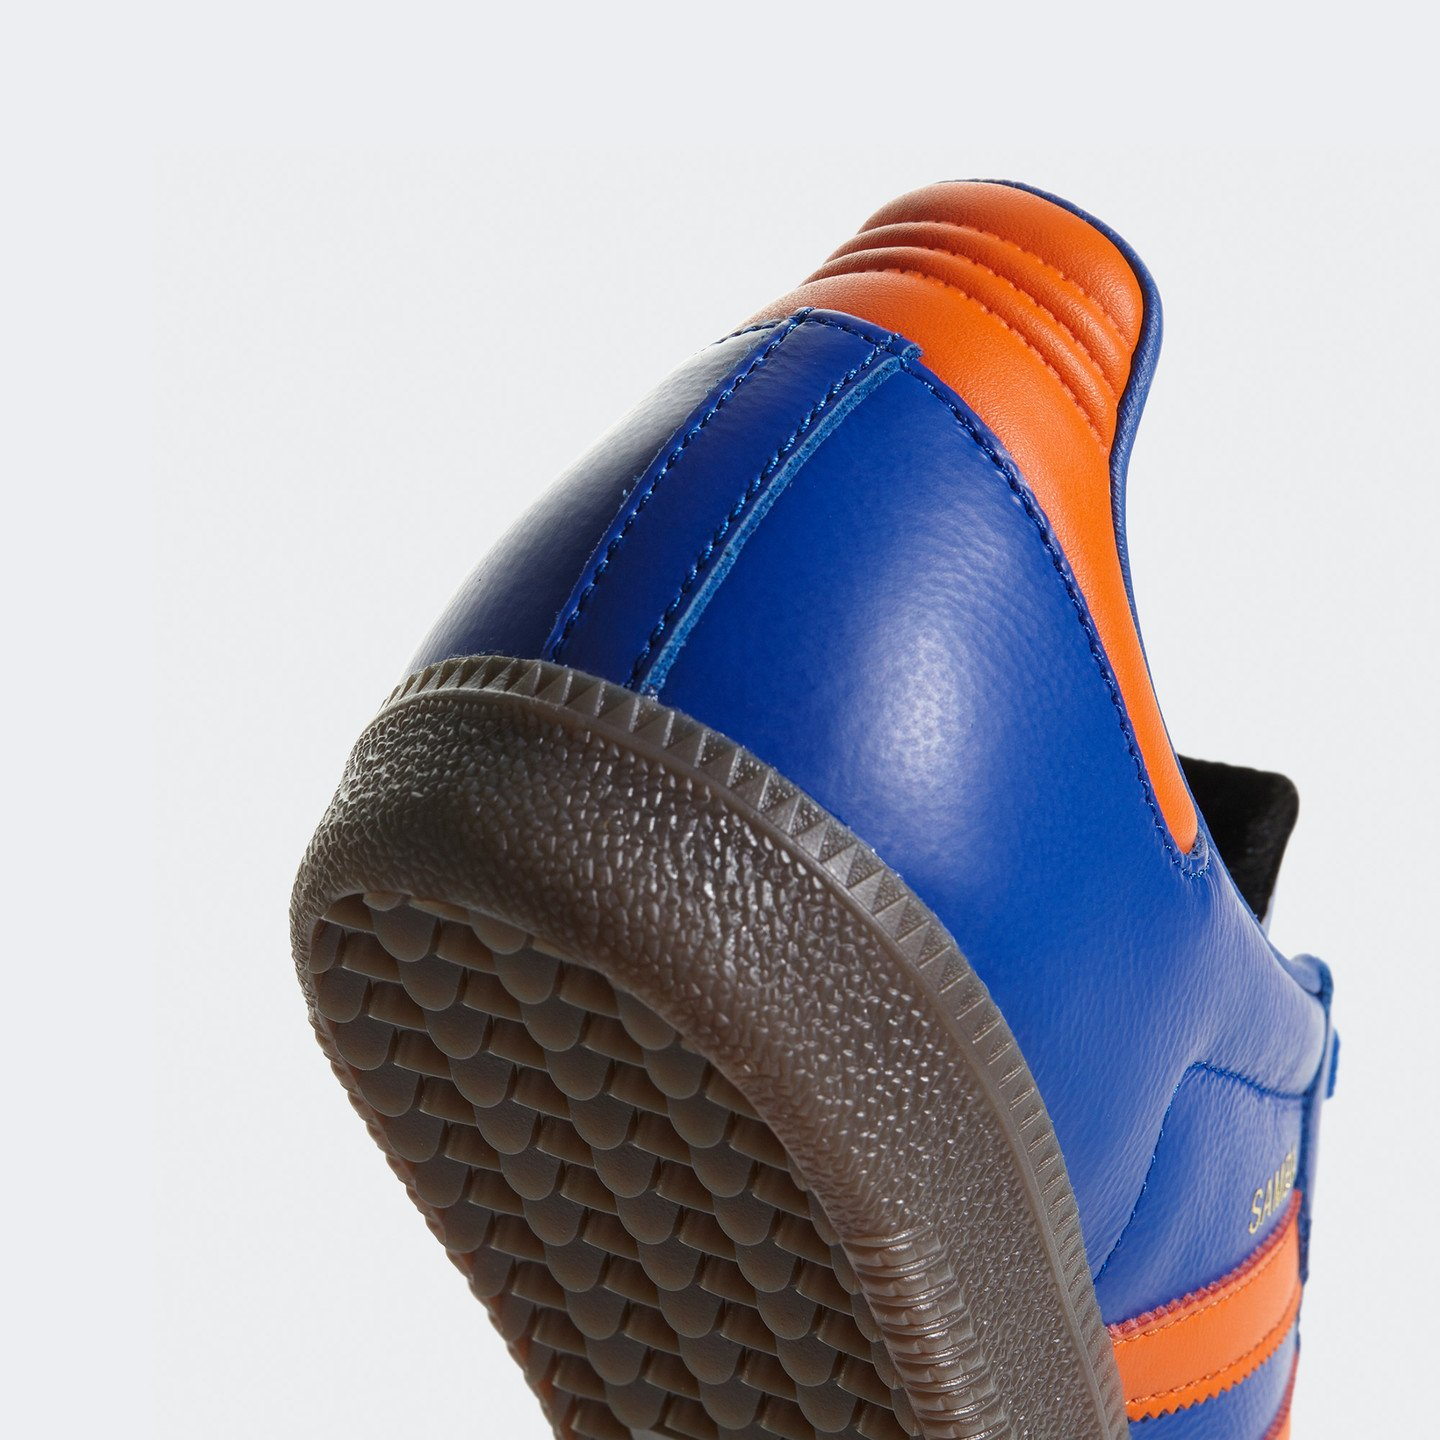 Adidas Samba OG Bold Blue / Orange / Gum CQ2150